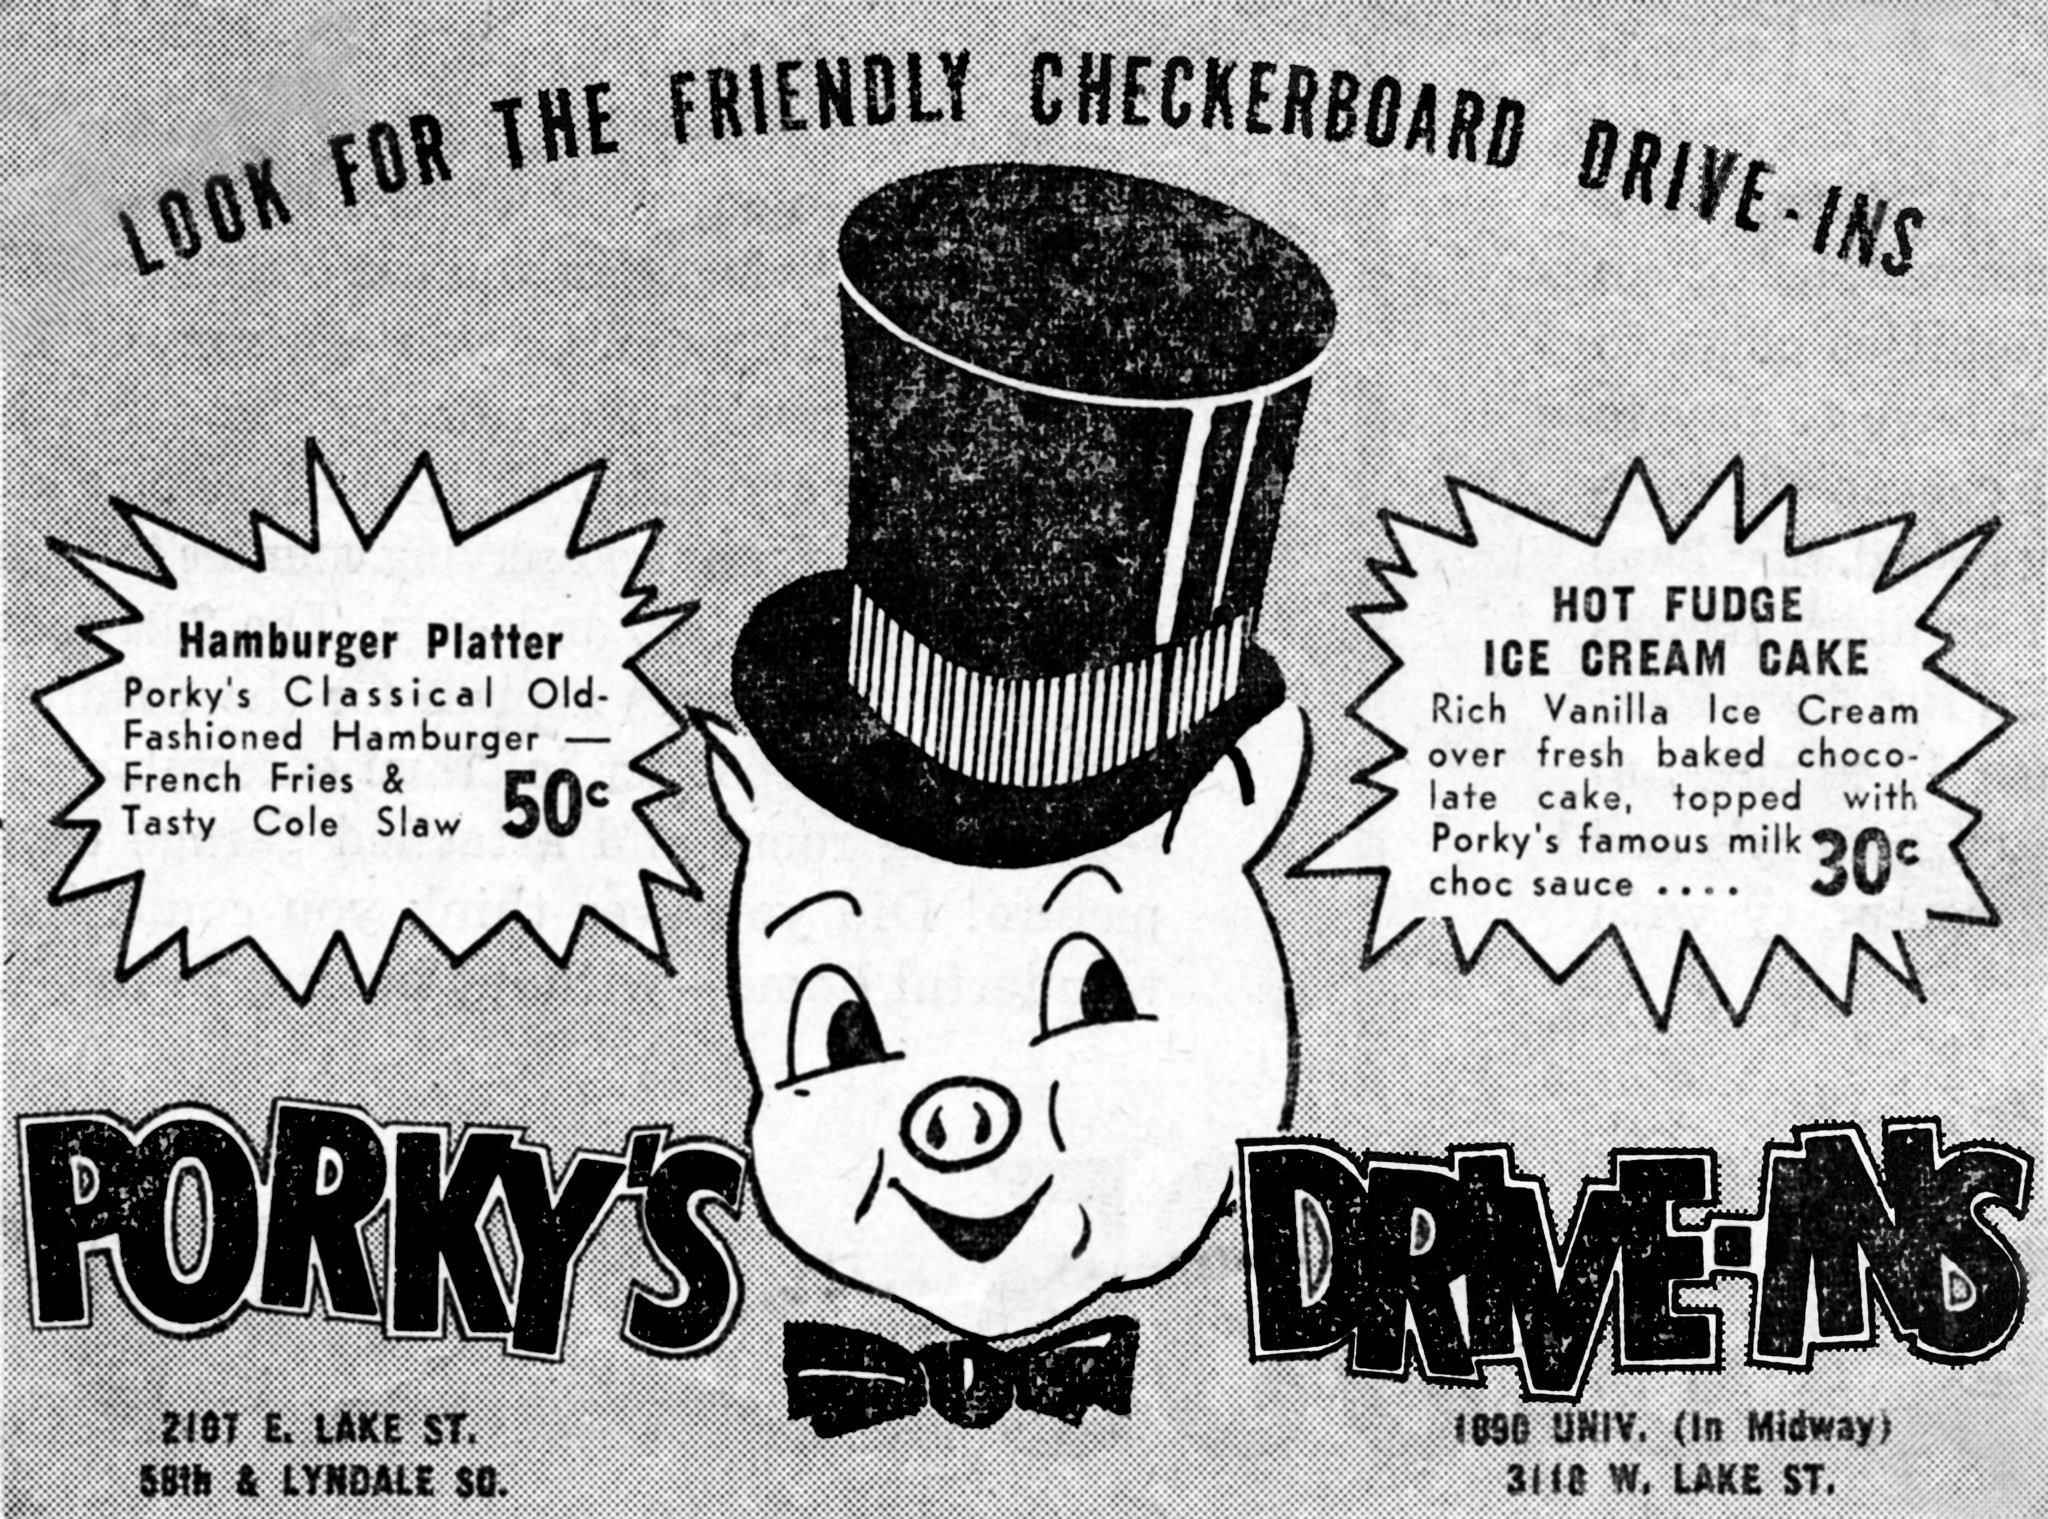 Roy Father And Ray Son Truelson Opened Several Porky S Drive In Restaurants The Early 1950s Including One At 21st Ave East Lake Street